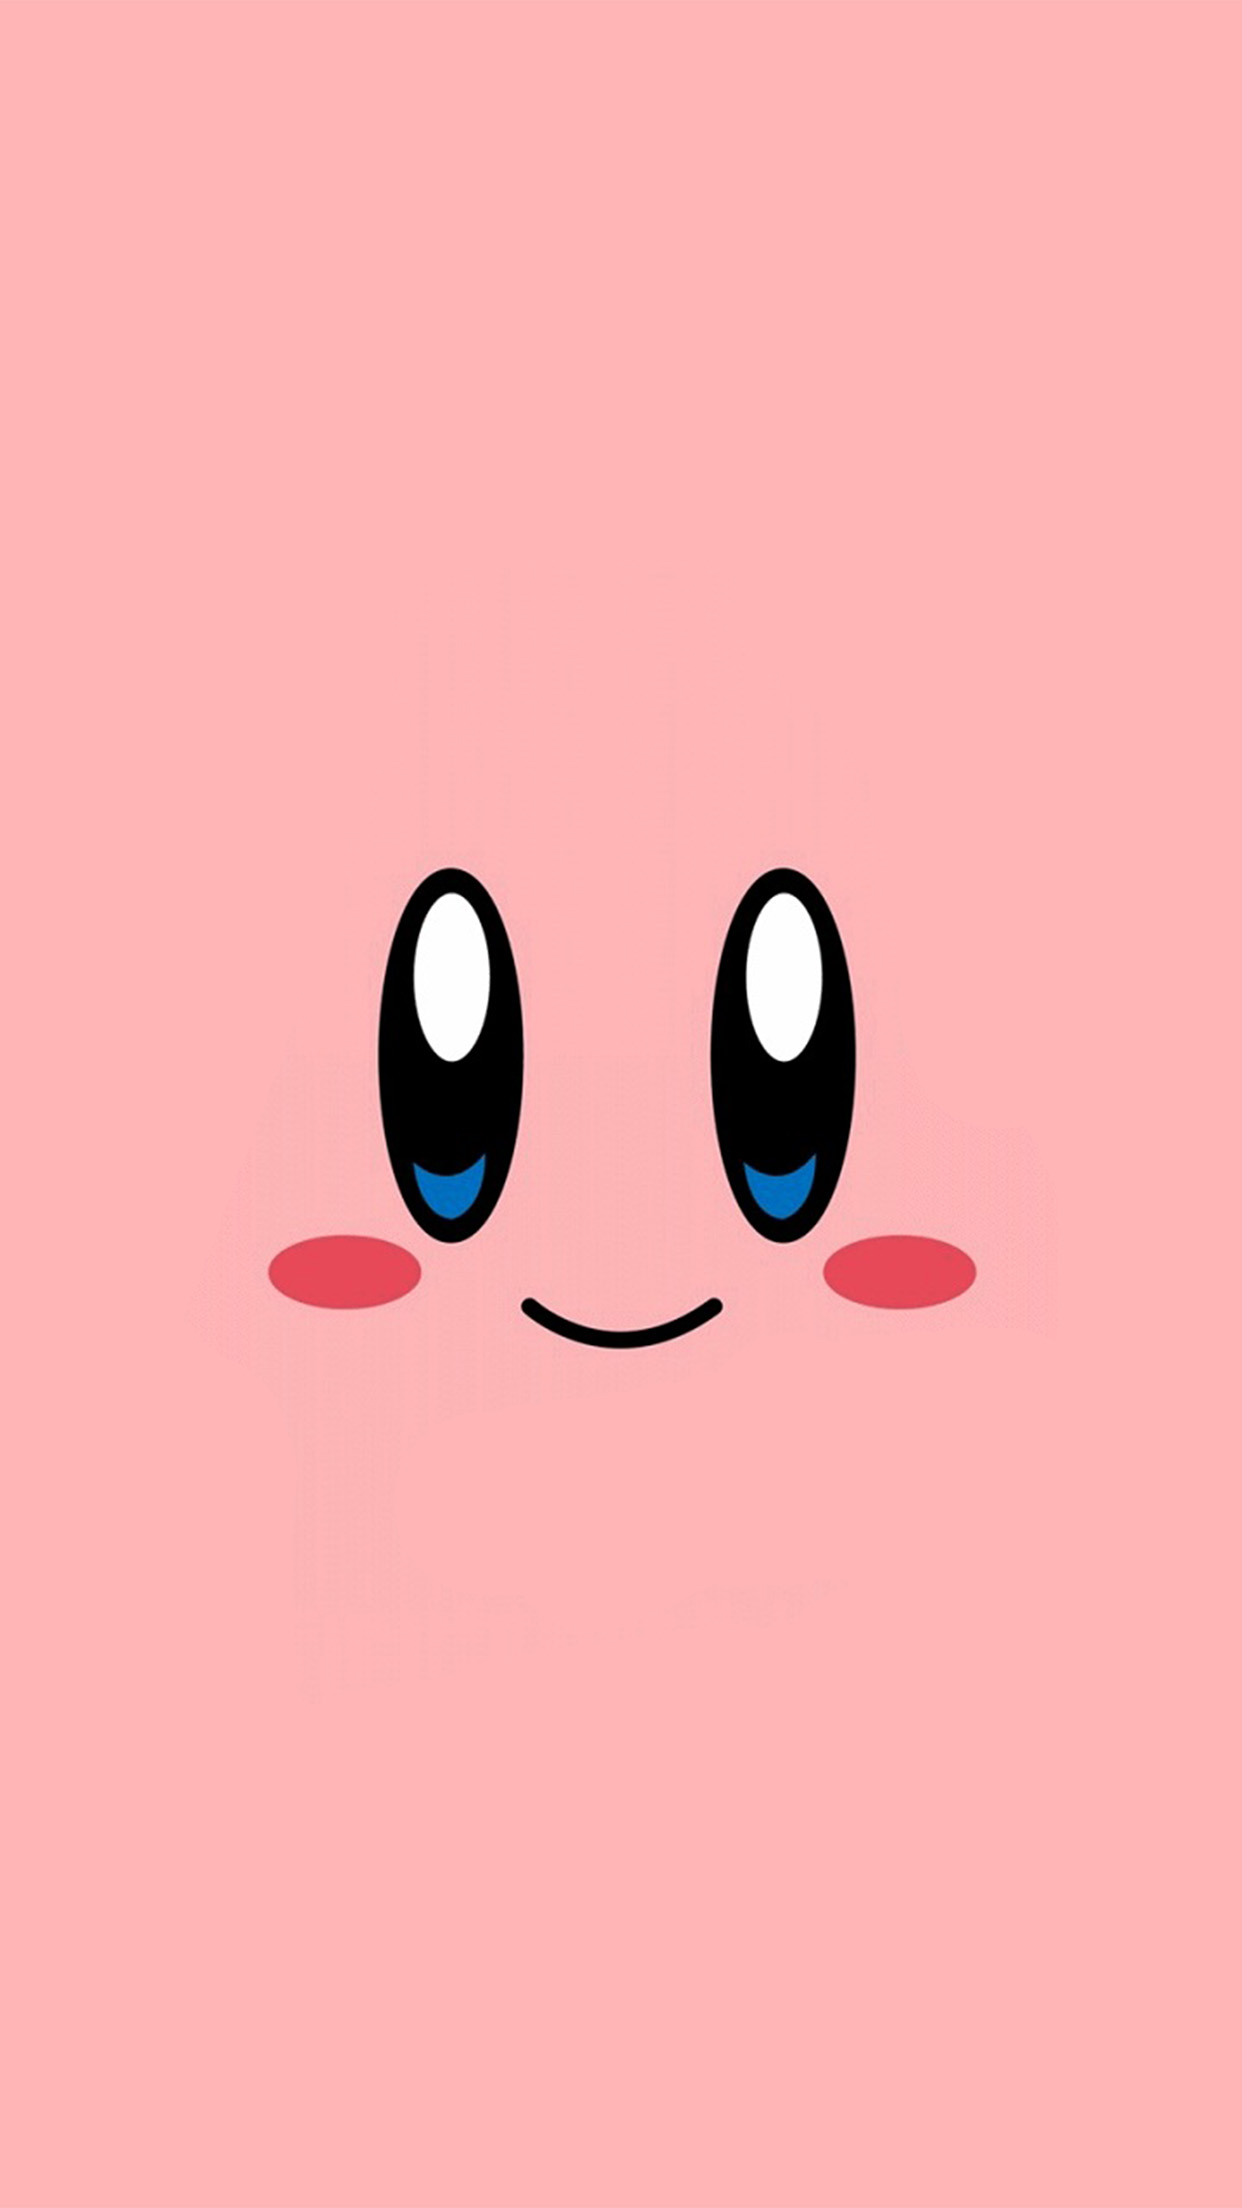 Cute Animated Wallpapers Gif Az54 Kirby Pink Face Cute Illustration Art Wallpaper